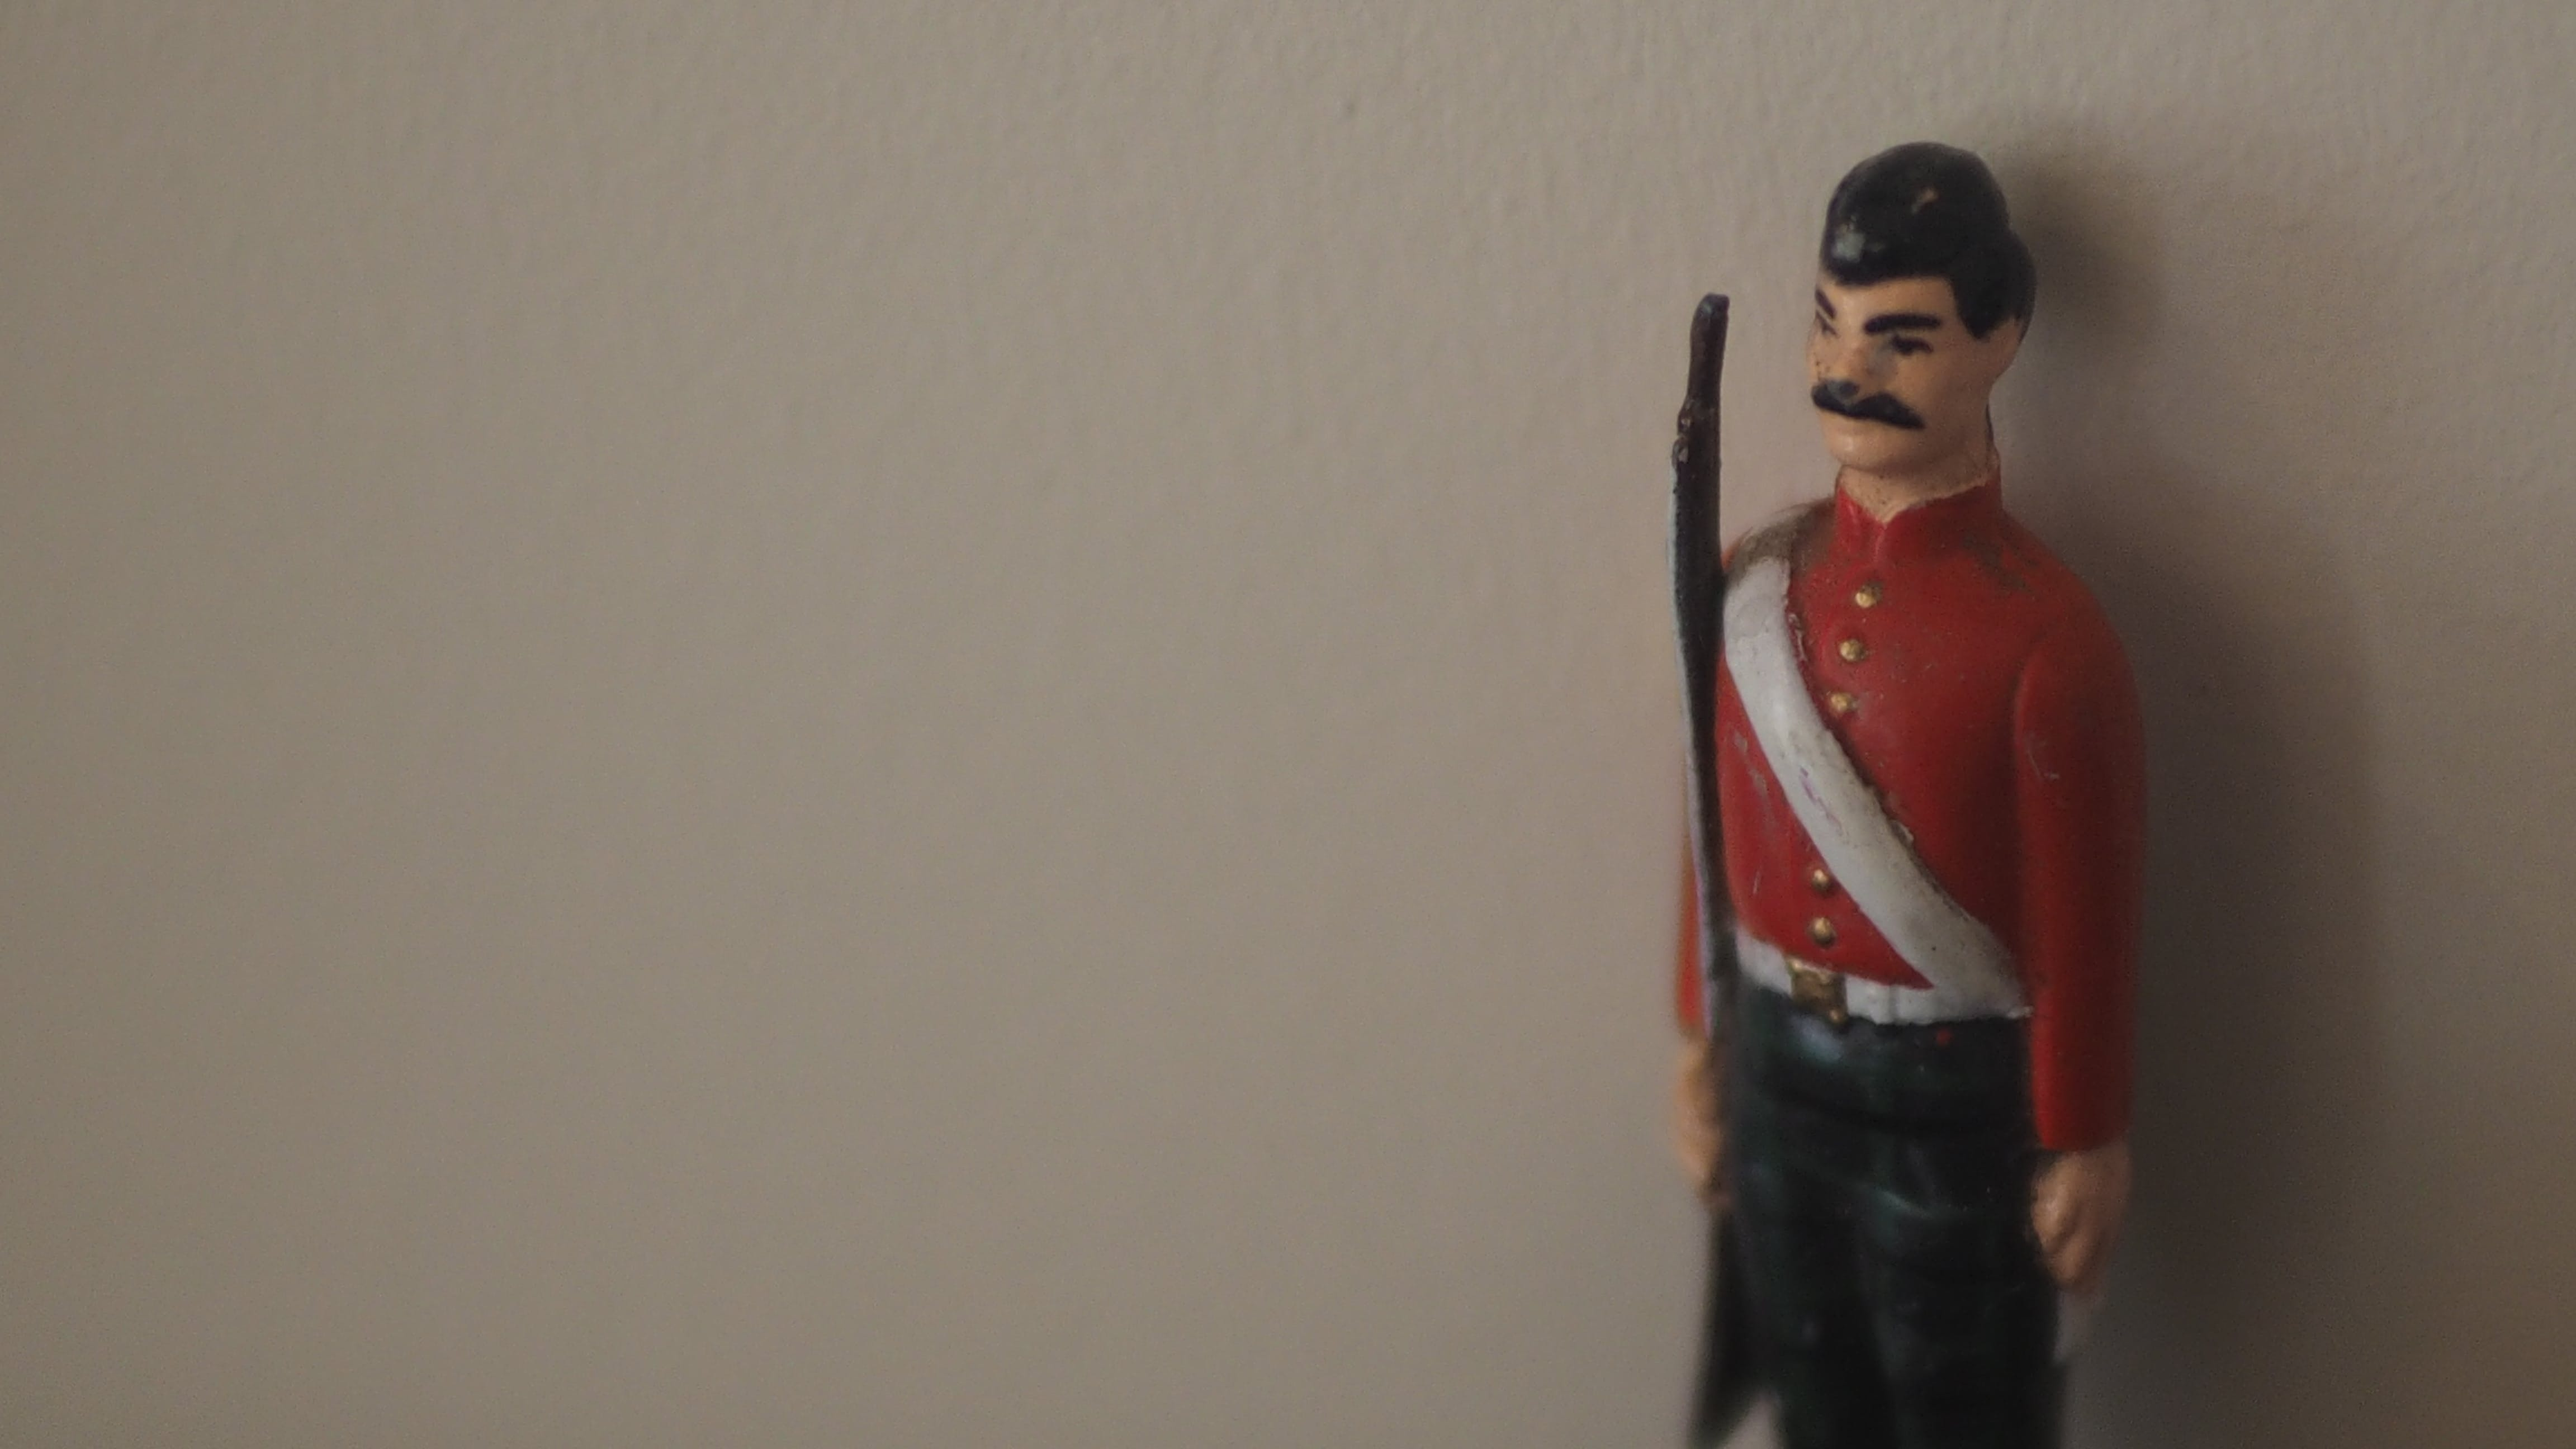 Free stock photo of minature, ornament, toy, toy soldier